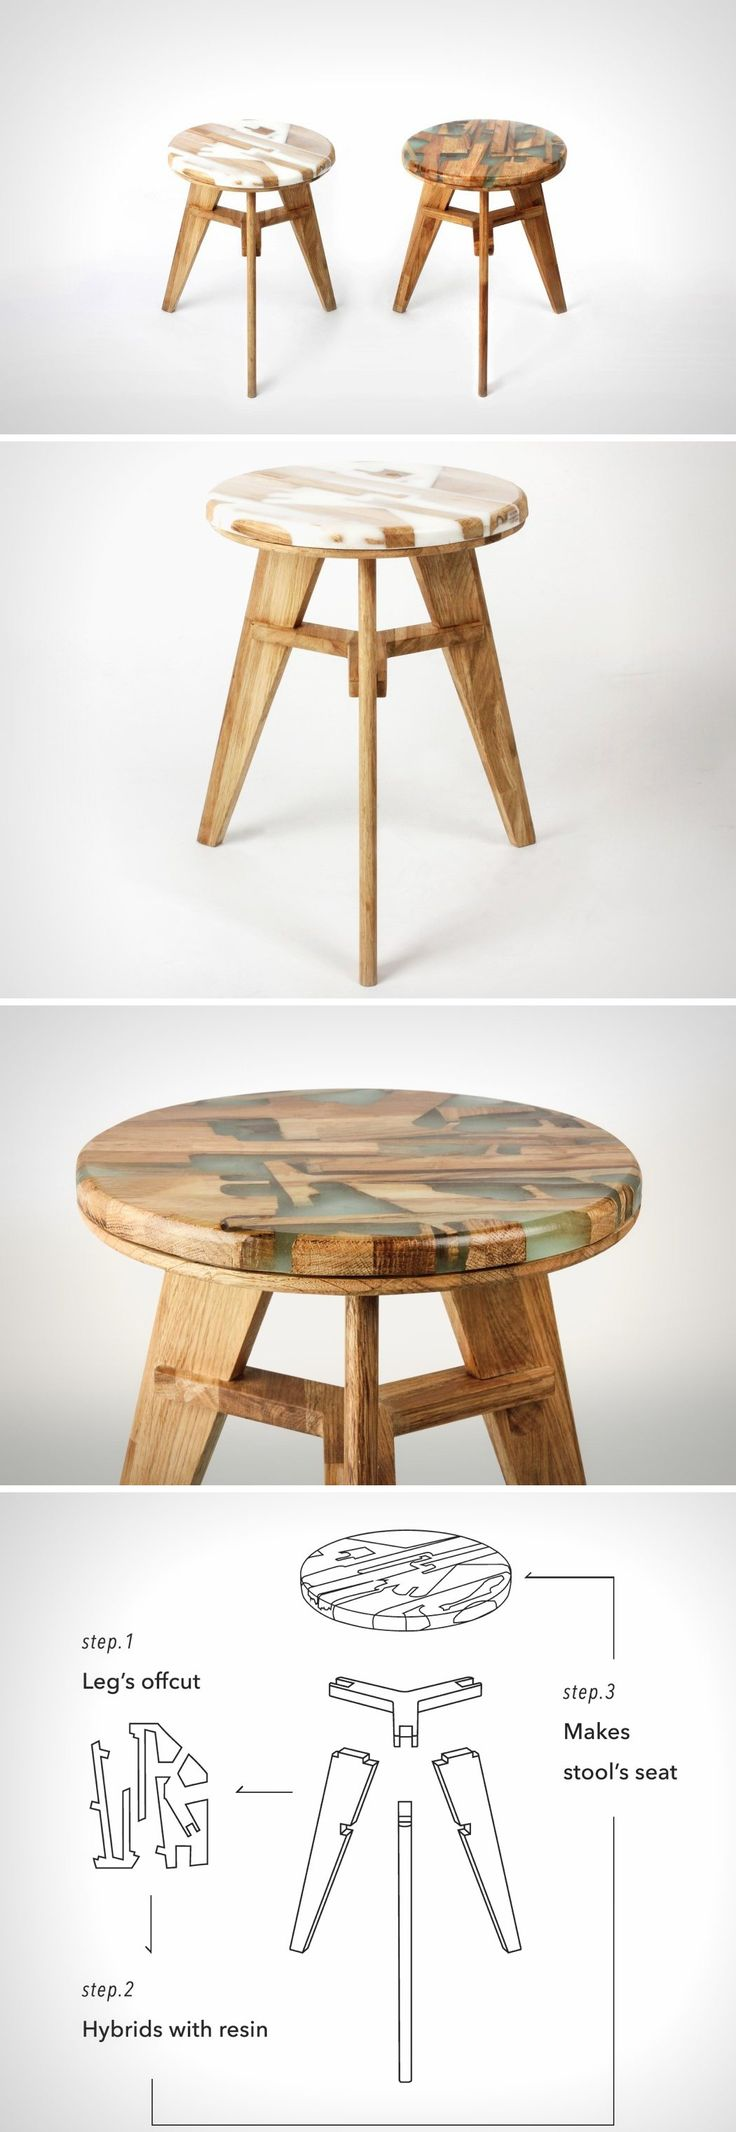 What the designers have done with the Zero Per Stool is just ingenious. This stool uses its own waste to build itself! That too in a way that gives it such an incredible character… one that is unique to each stool.